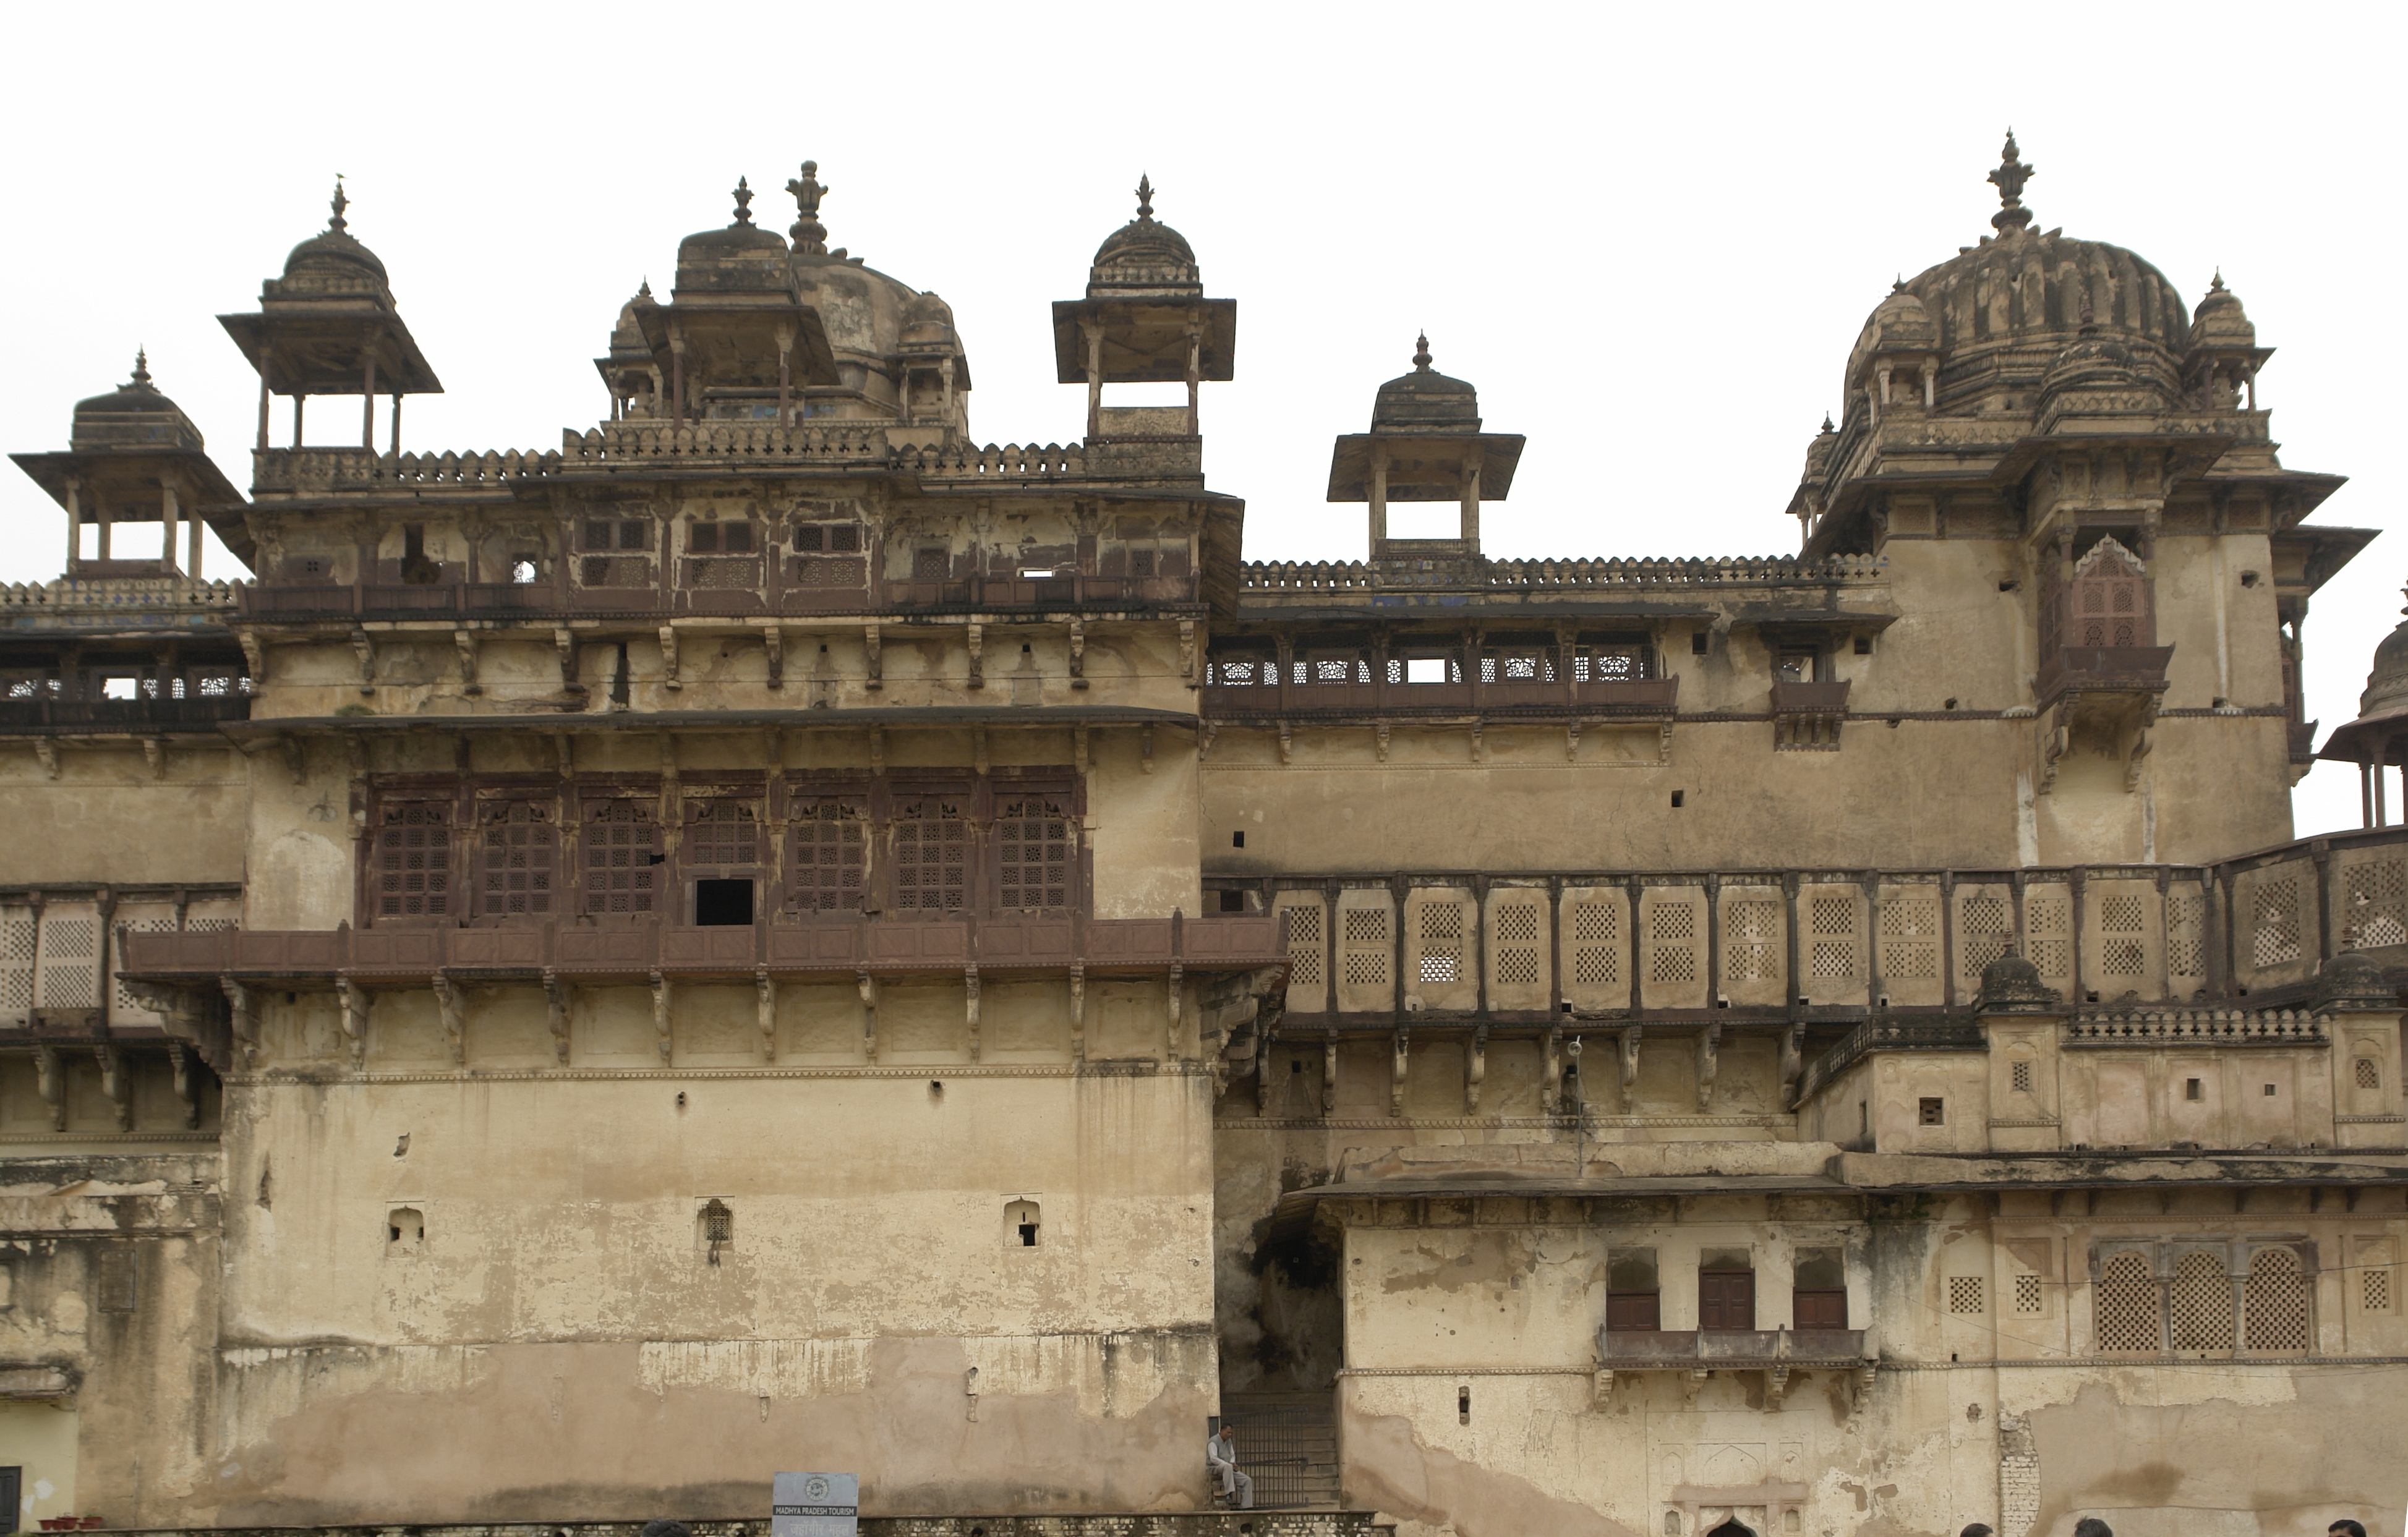 Orchha India  City pictures : Jahangir Mahal, Orchha, MP, India Wikimedia Commons